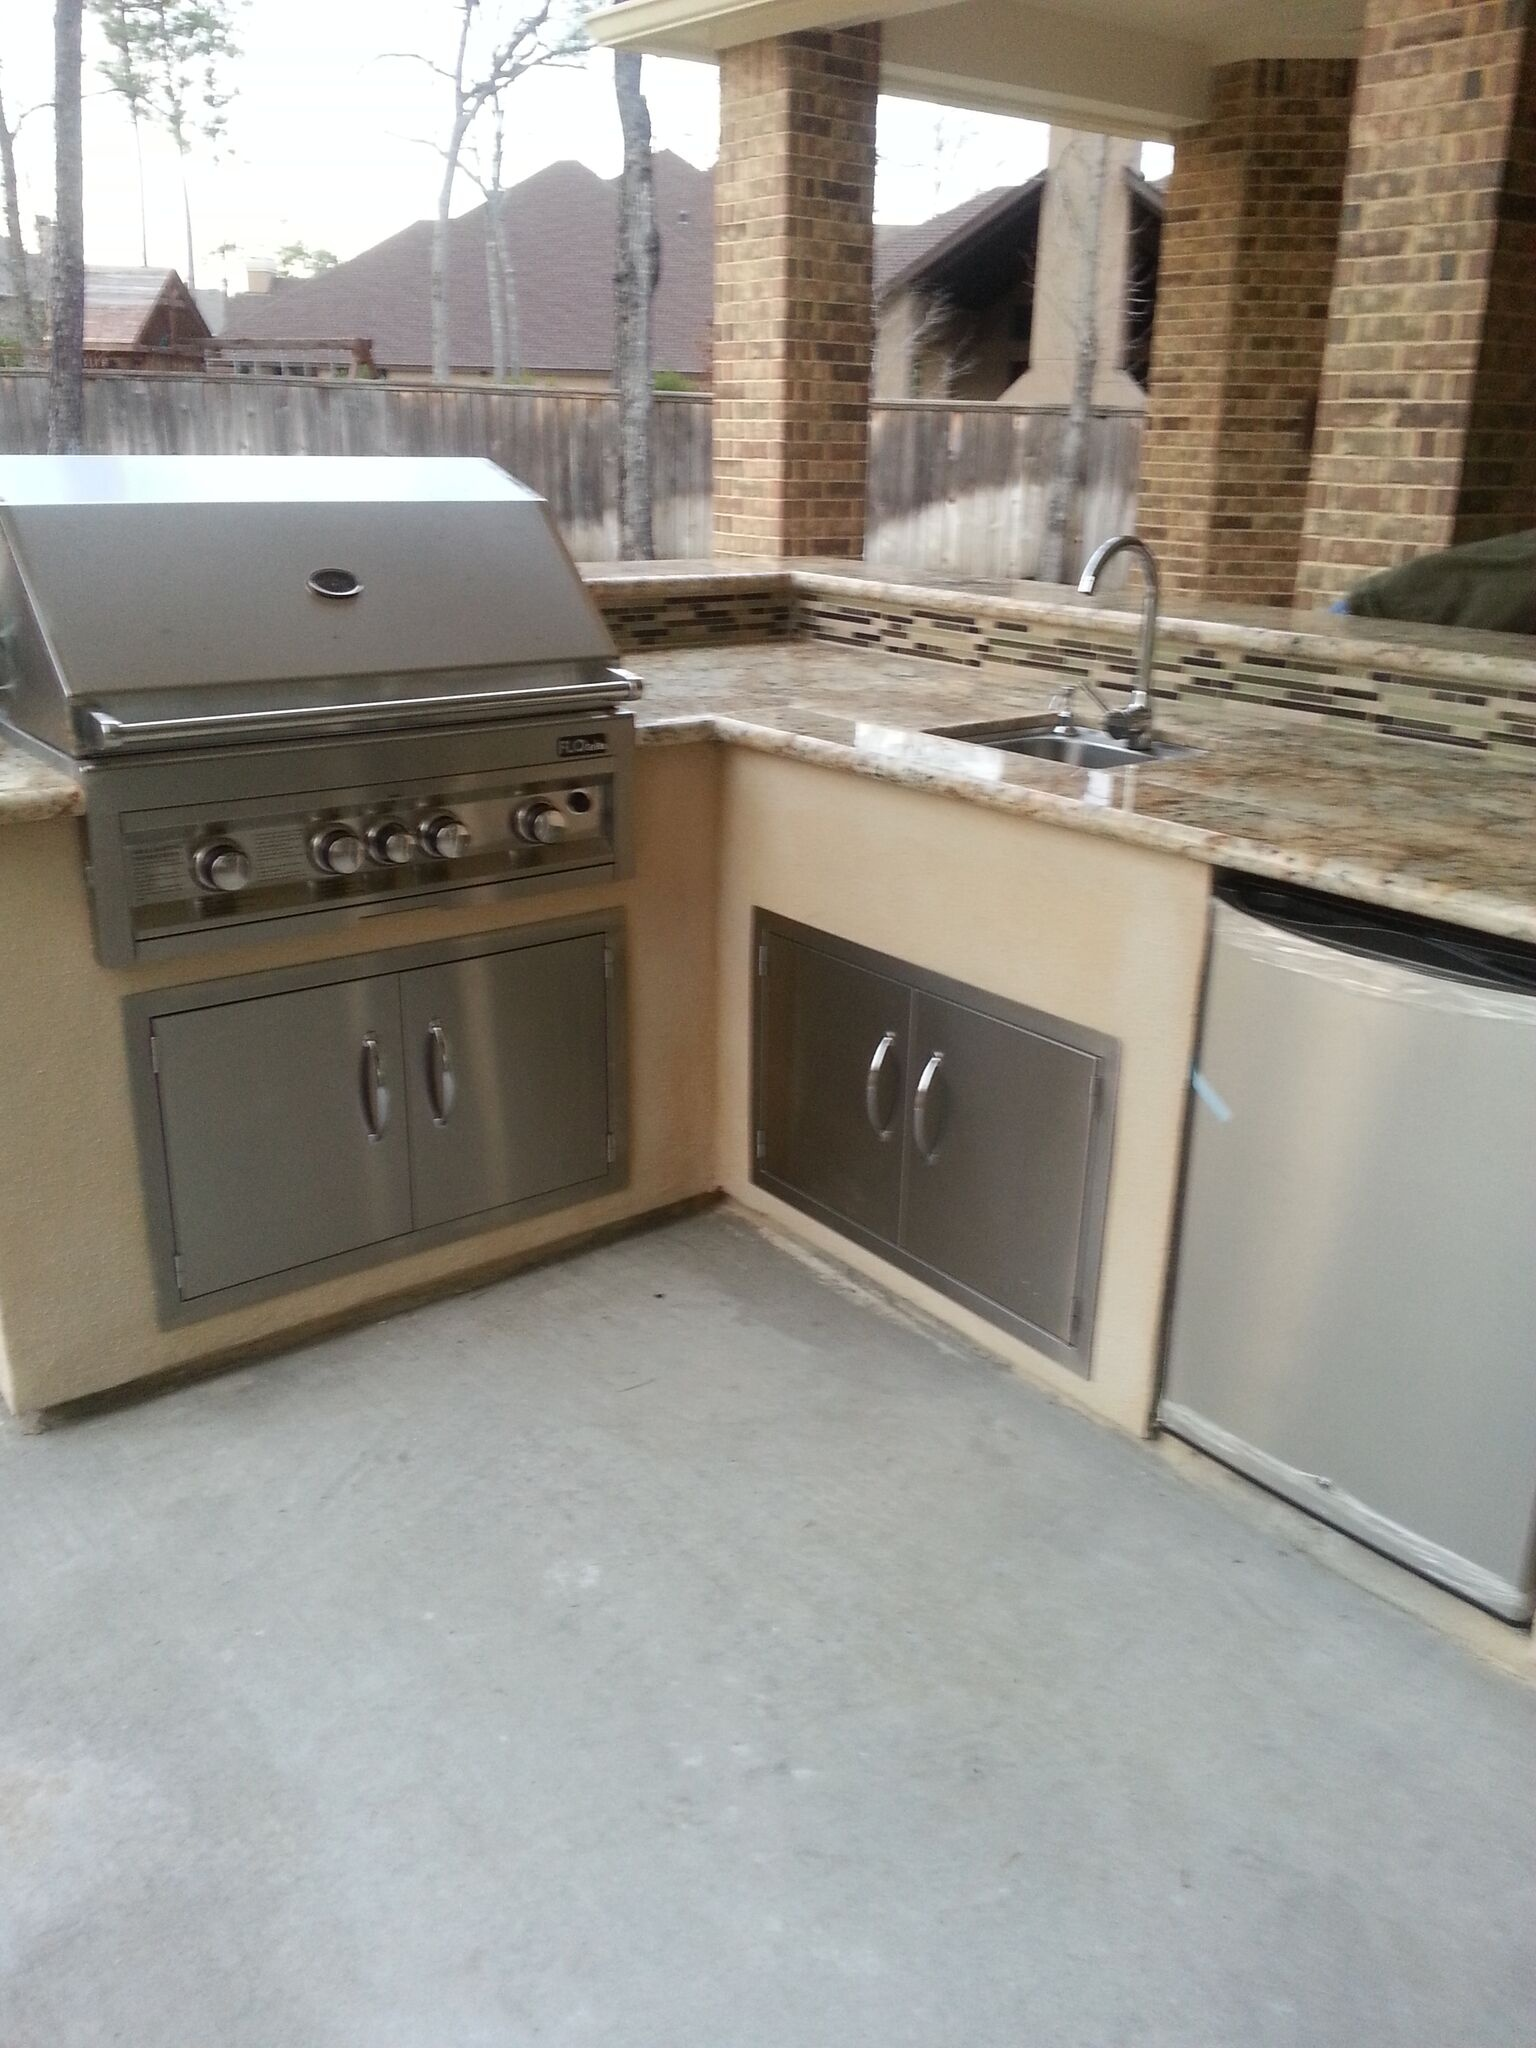 https://0201.nccdn.net/1_2/000/000/111/3ed/OutdoorKitchen-1536x2048.jpg